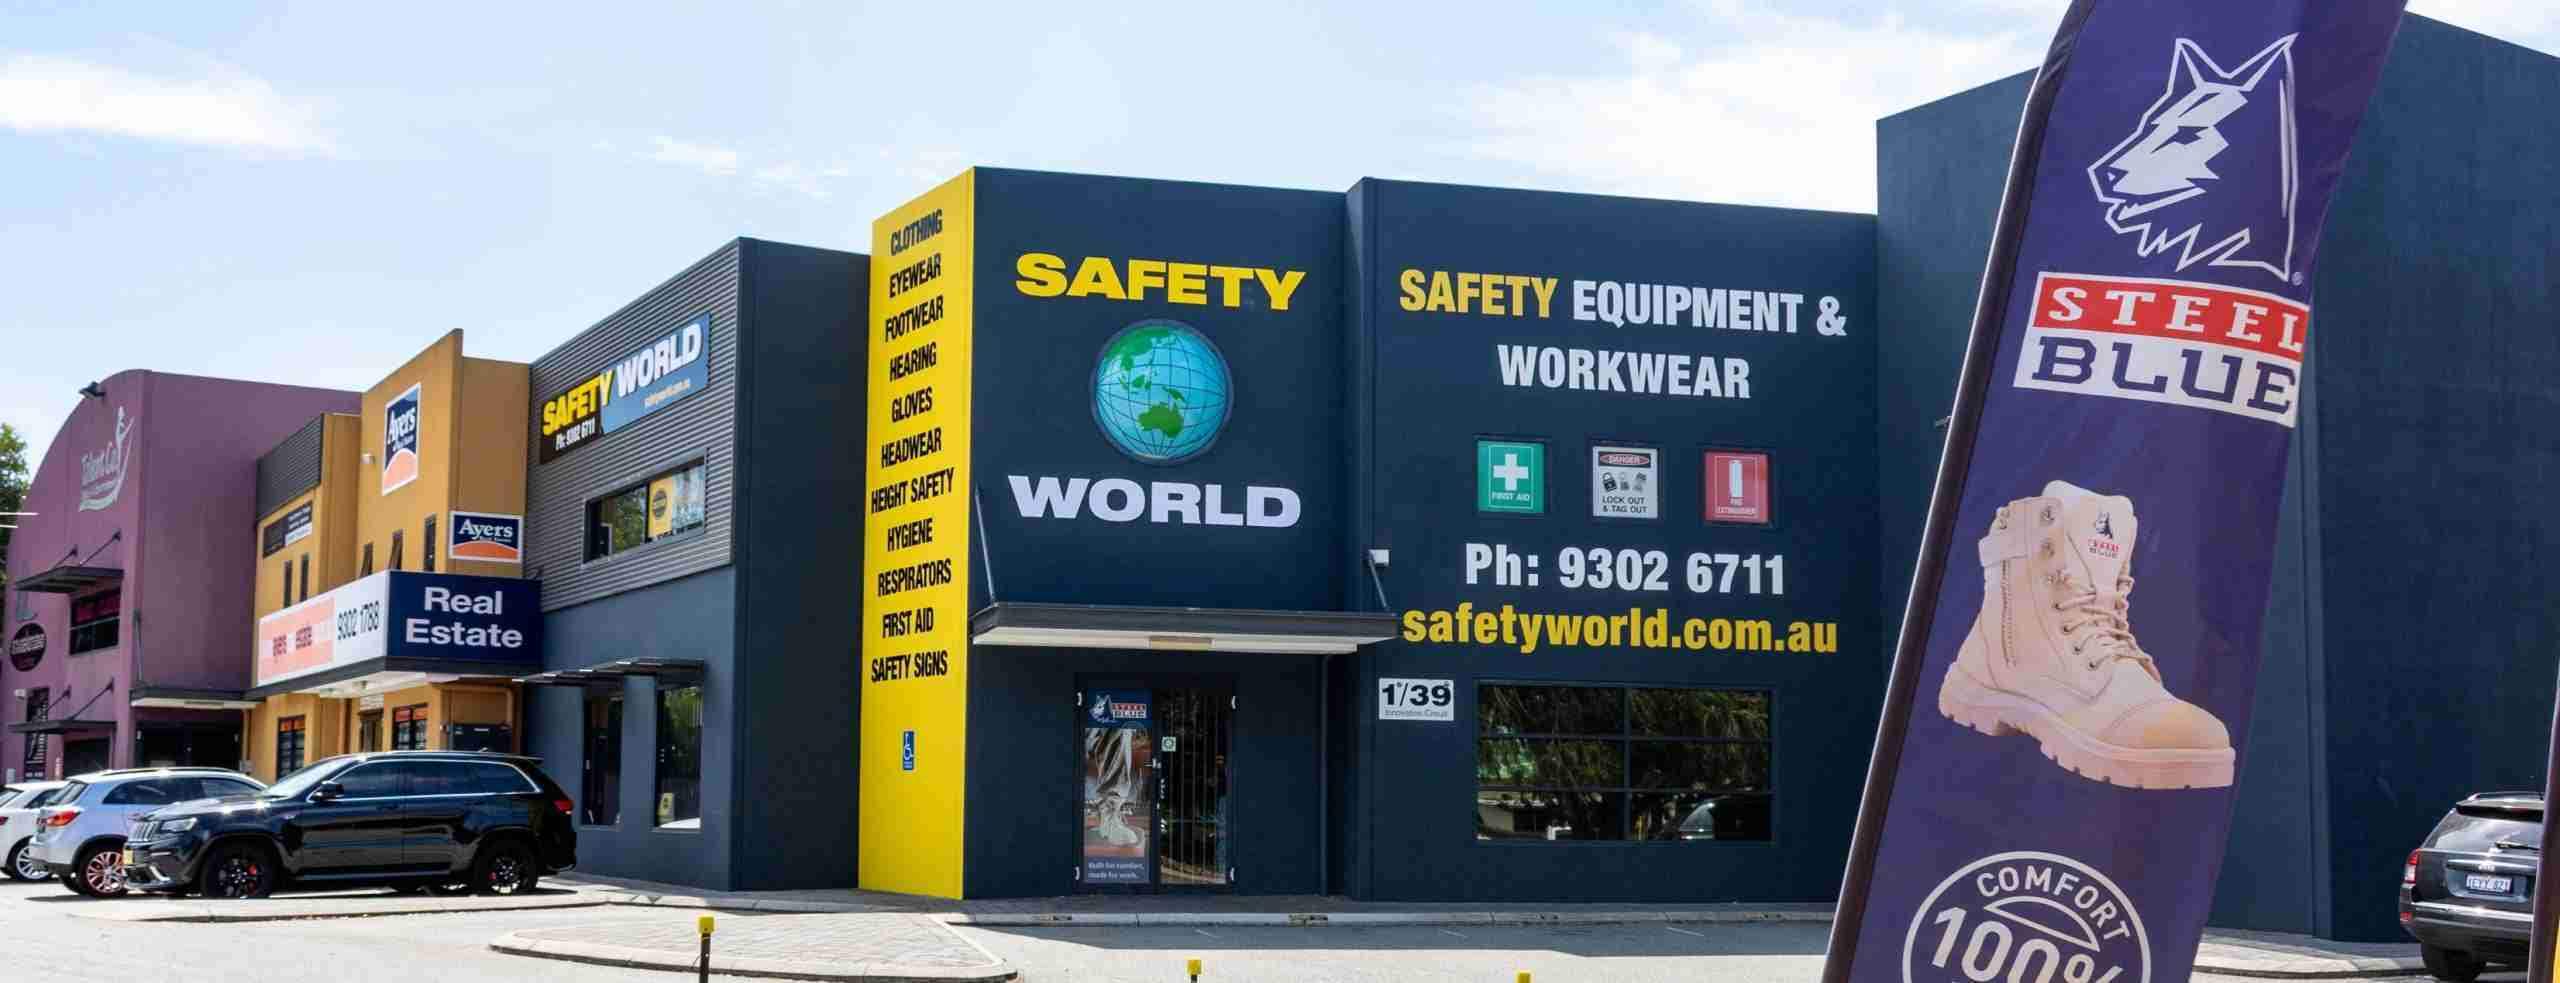 Safety Equipment and Industrial Supplies